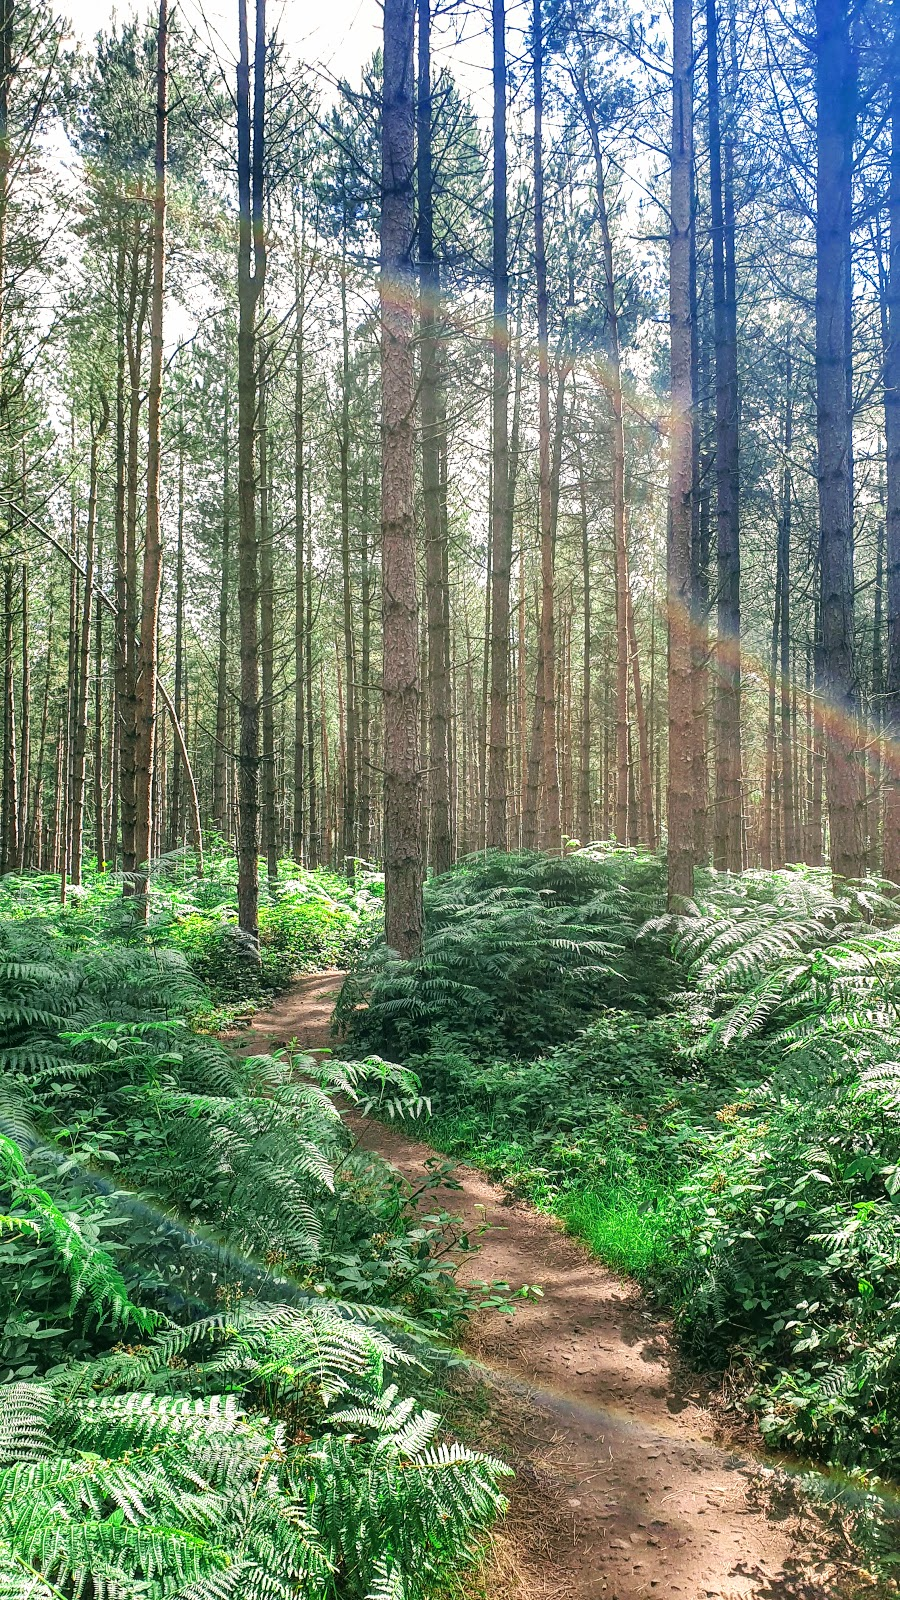 Tall Pine Trees in Sherwood Forest, Nottinghamshire, England.